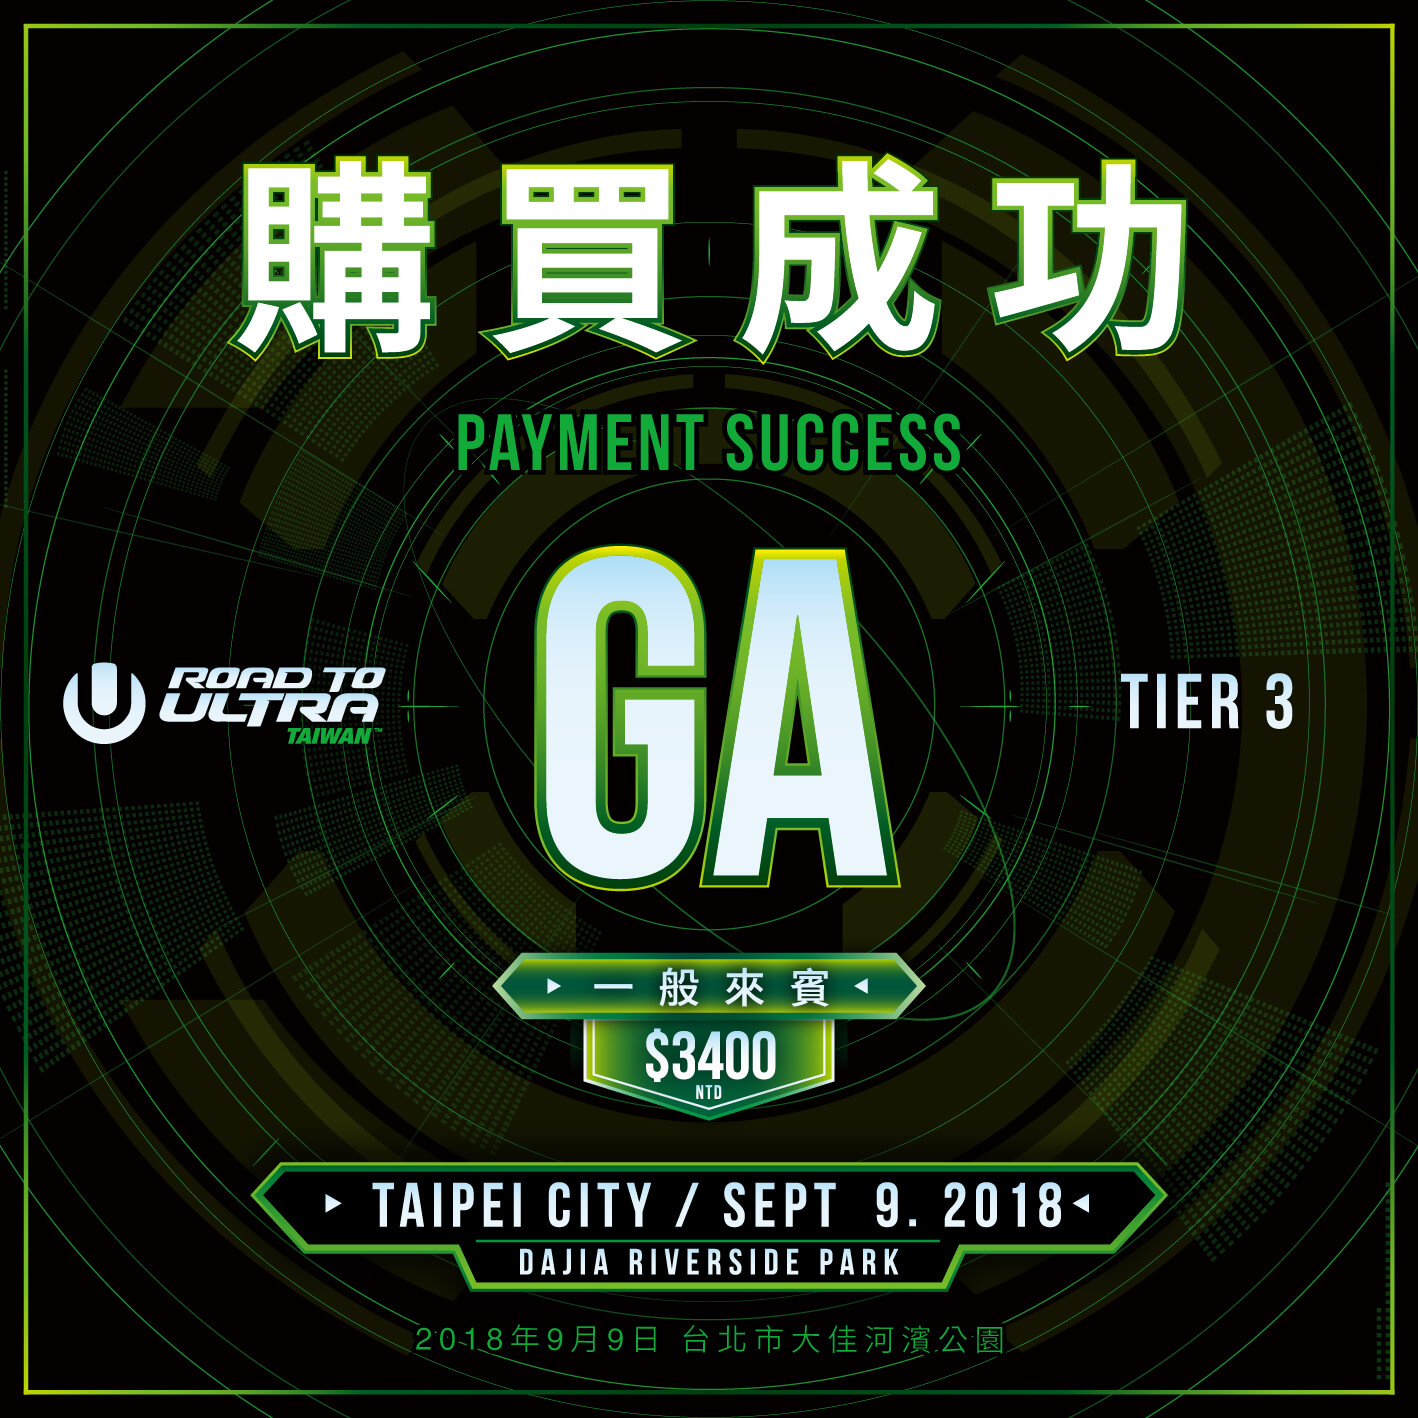 Road To Ultra Taiwan 2018 – GA 1 Day RESISTANCE Ticket